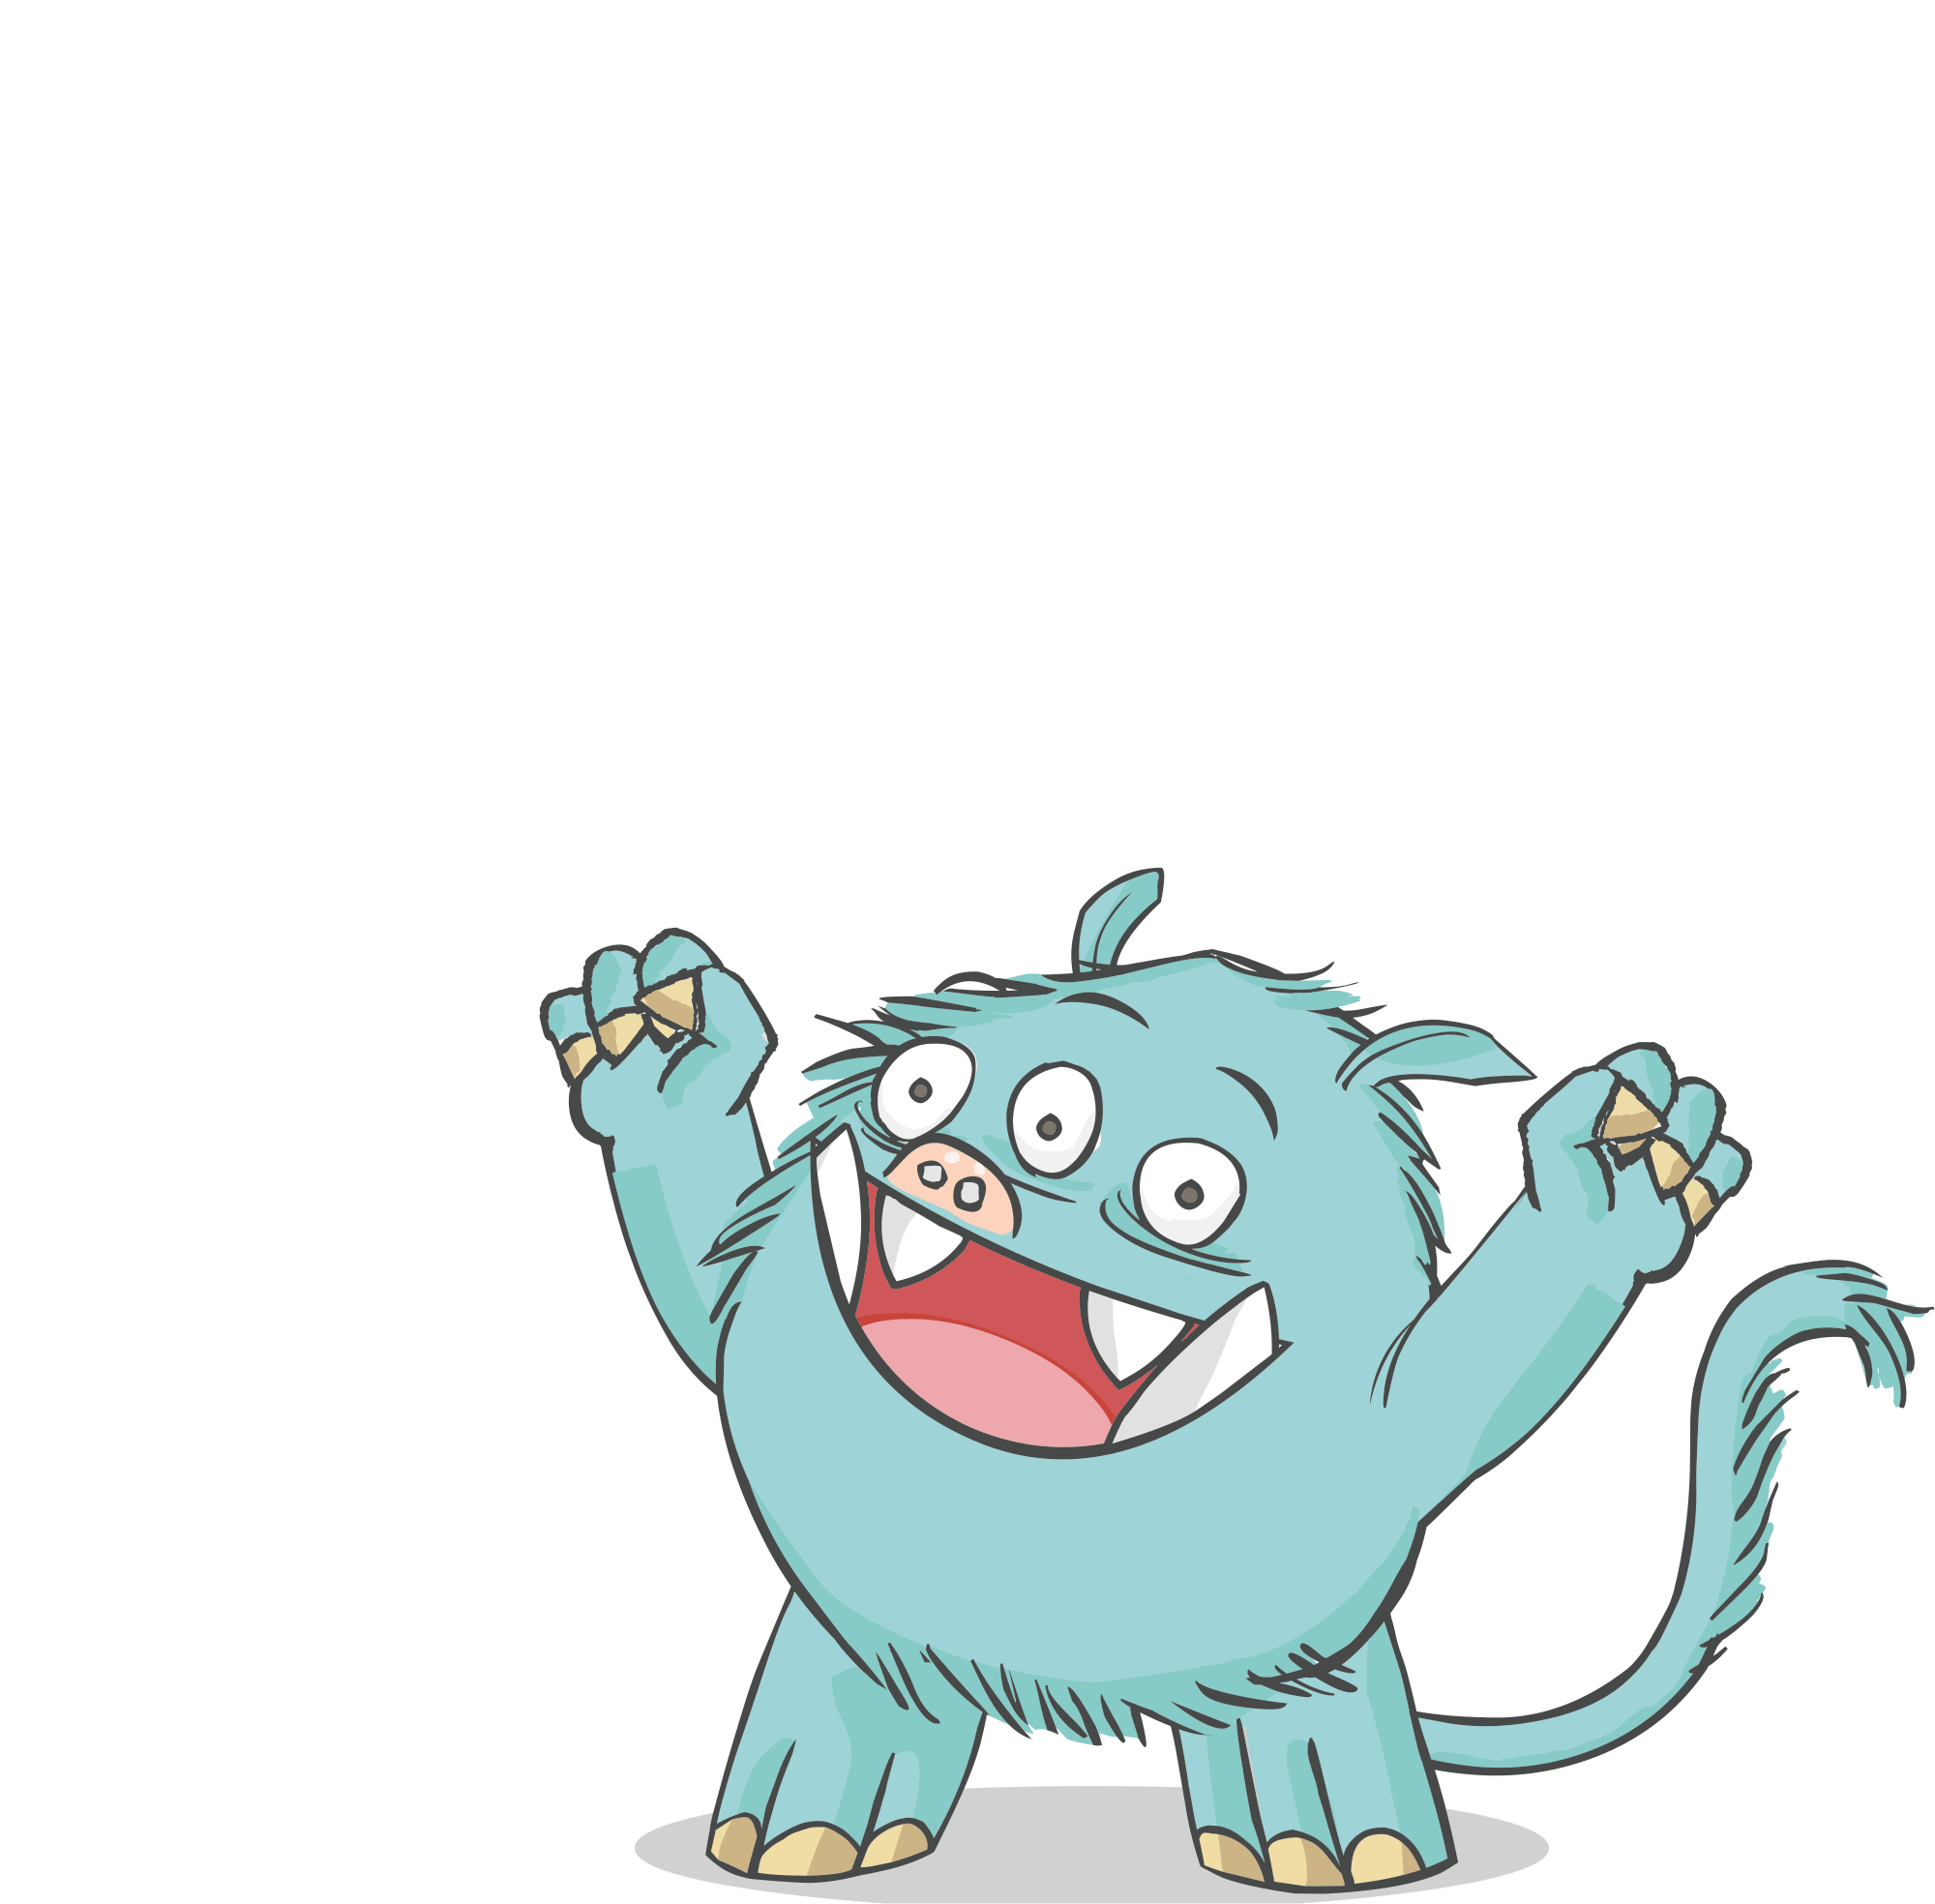 My kids love this program! It's made a huge impact and it is perfect for them to use while at home. Excellent! Julie R.